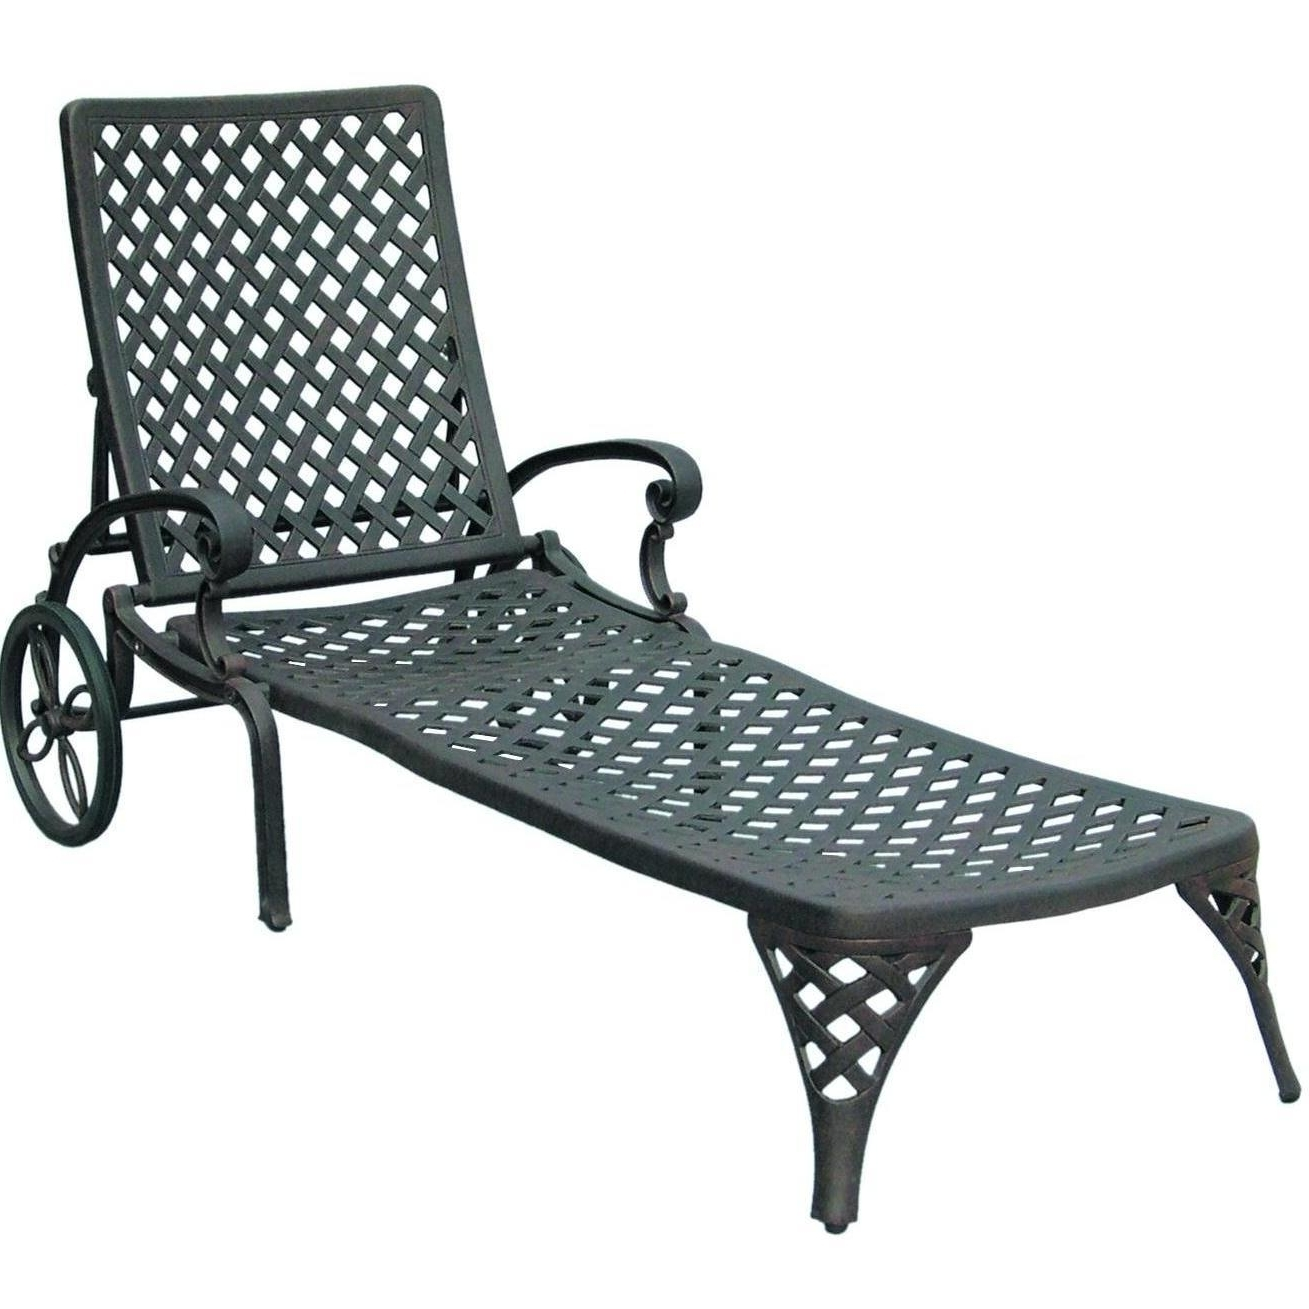 15 Best Wrought Iron Outdoor Chaise Lounge Chairs